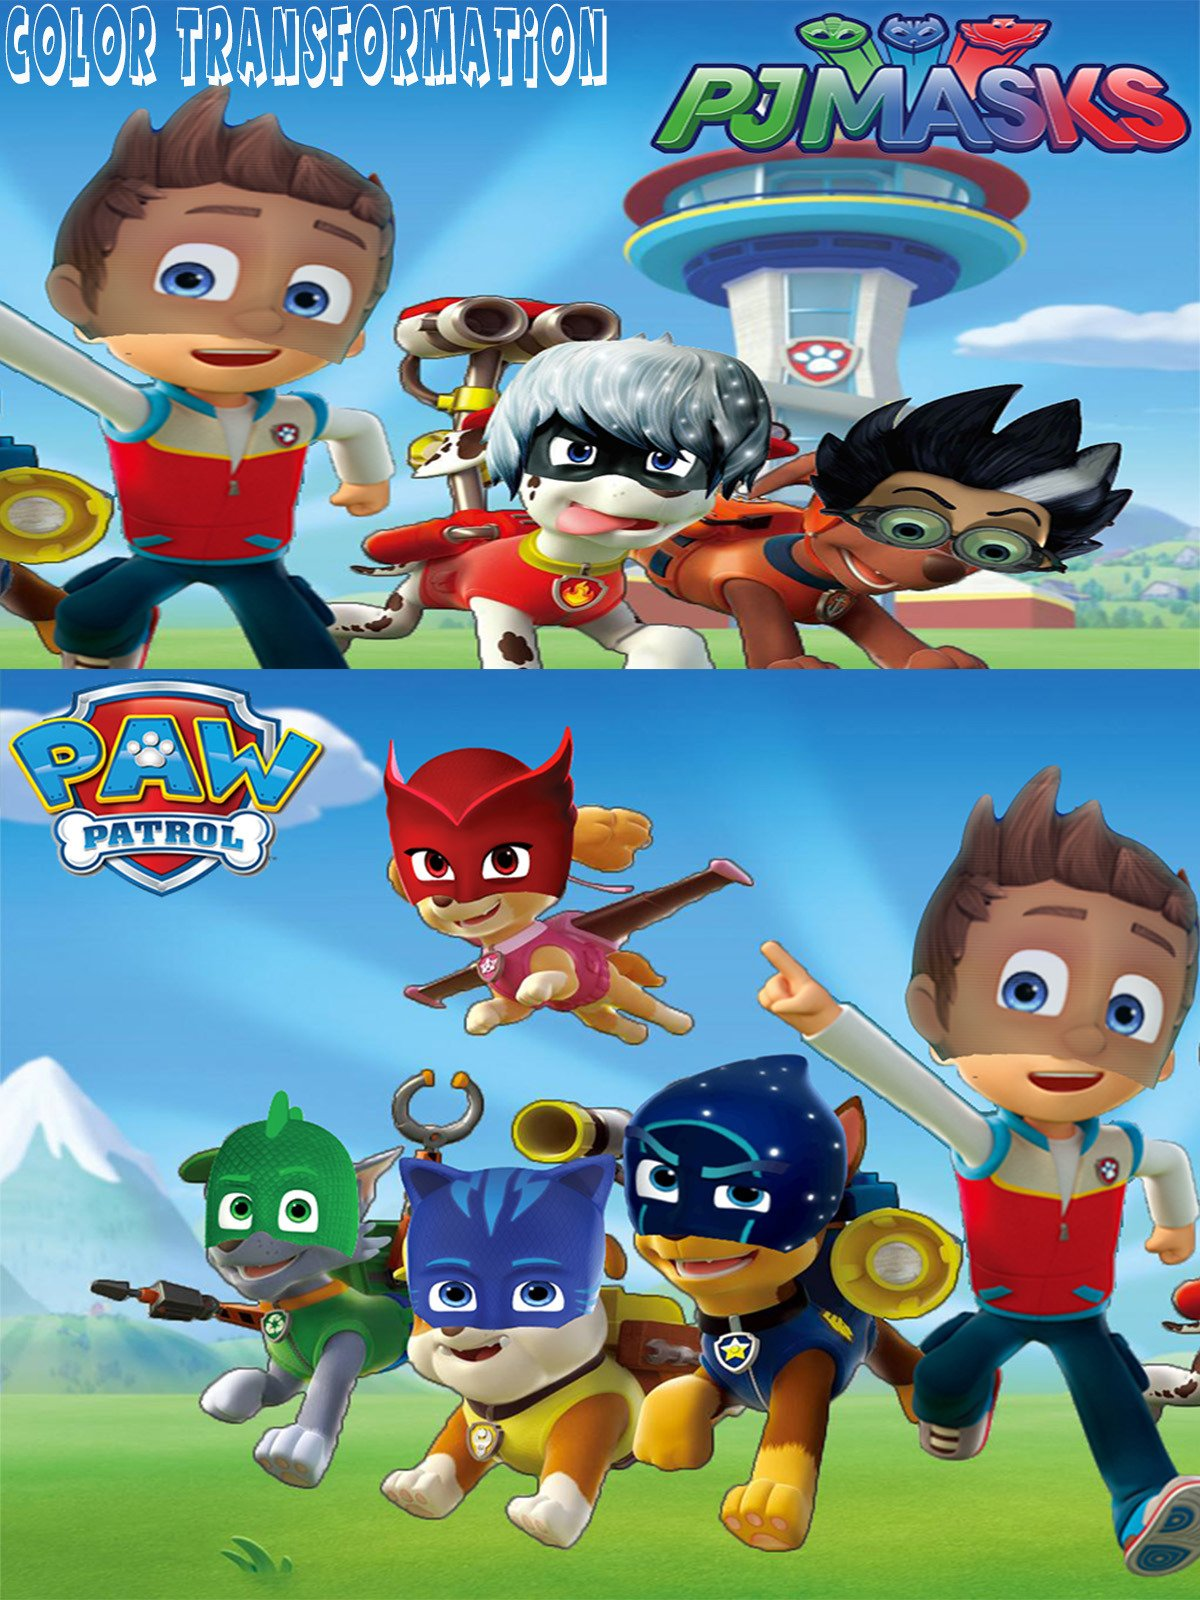 Amazon.com: PAW PATROL Transforms Into PJ MASKS Gekko, Catboy, Owlette, Luna Girl | Coloring Videos For Kids: Kathy, Awesome Toys TV